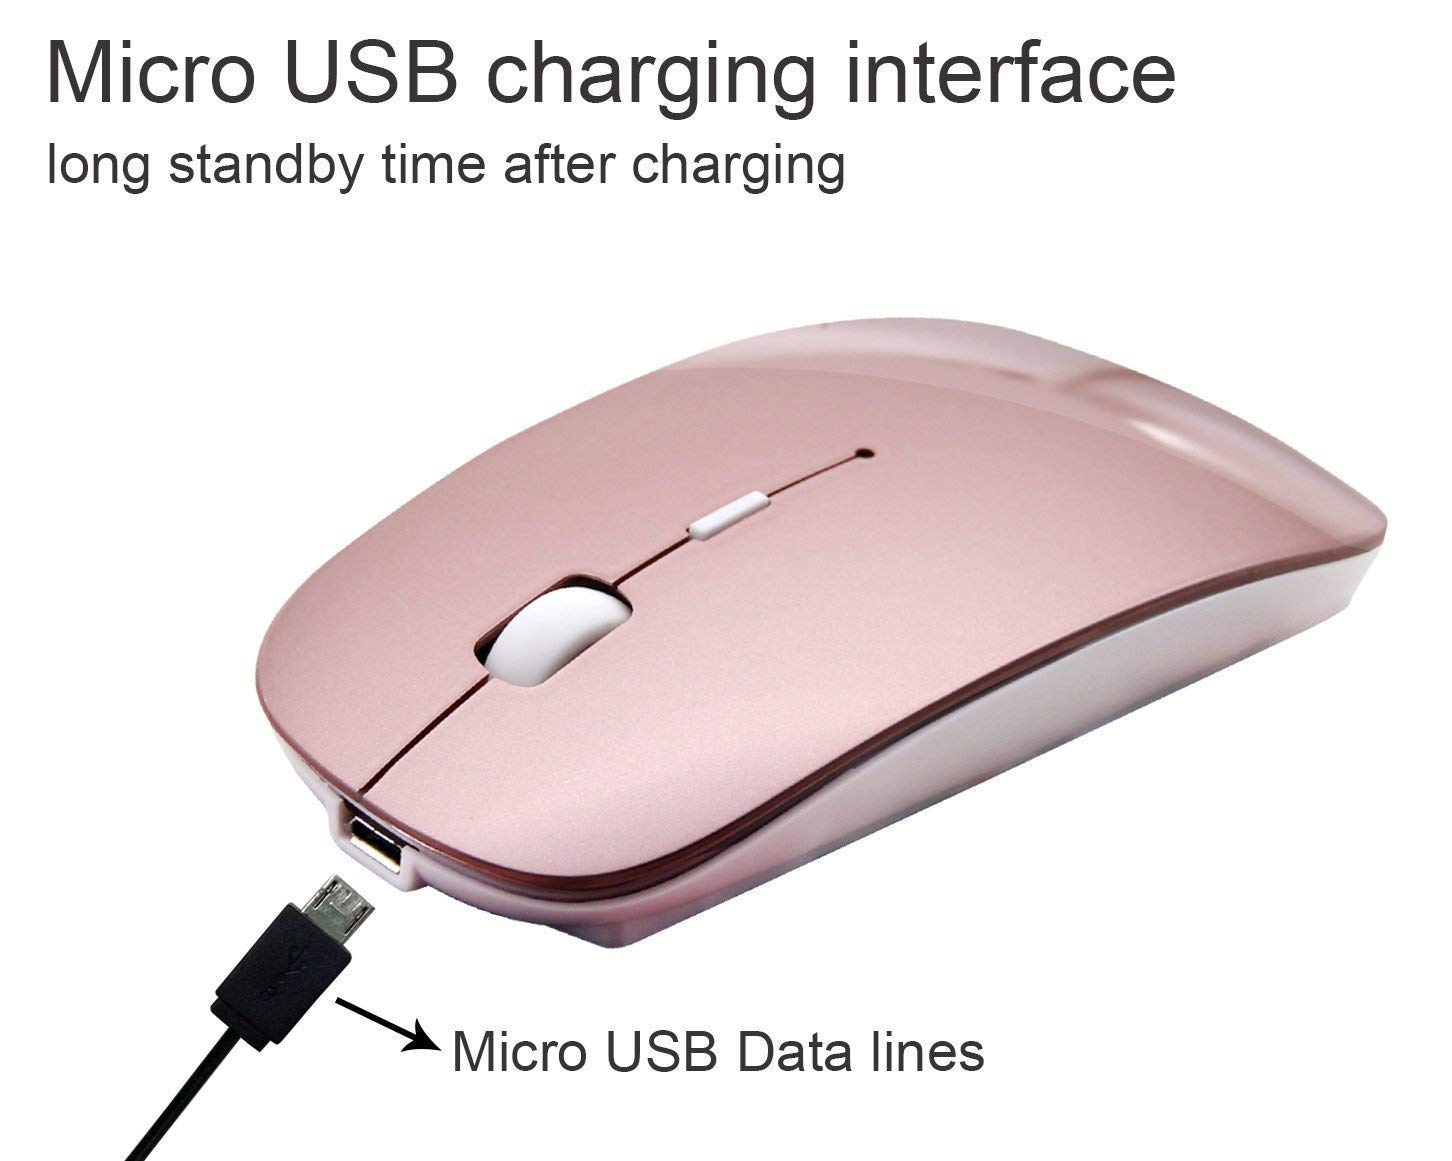 Bluetooth Mouse Wireless Mouse Mobile Mouse Optical Mouse Charging Mouse Applies for Notebook, PC, Laptop, Computer,Windows/Android Tablet, iMac Macbook Air/Pro(Rose Gold) by Bianco (Image #3)